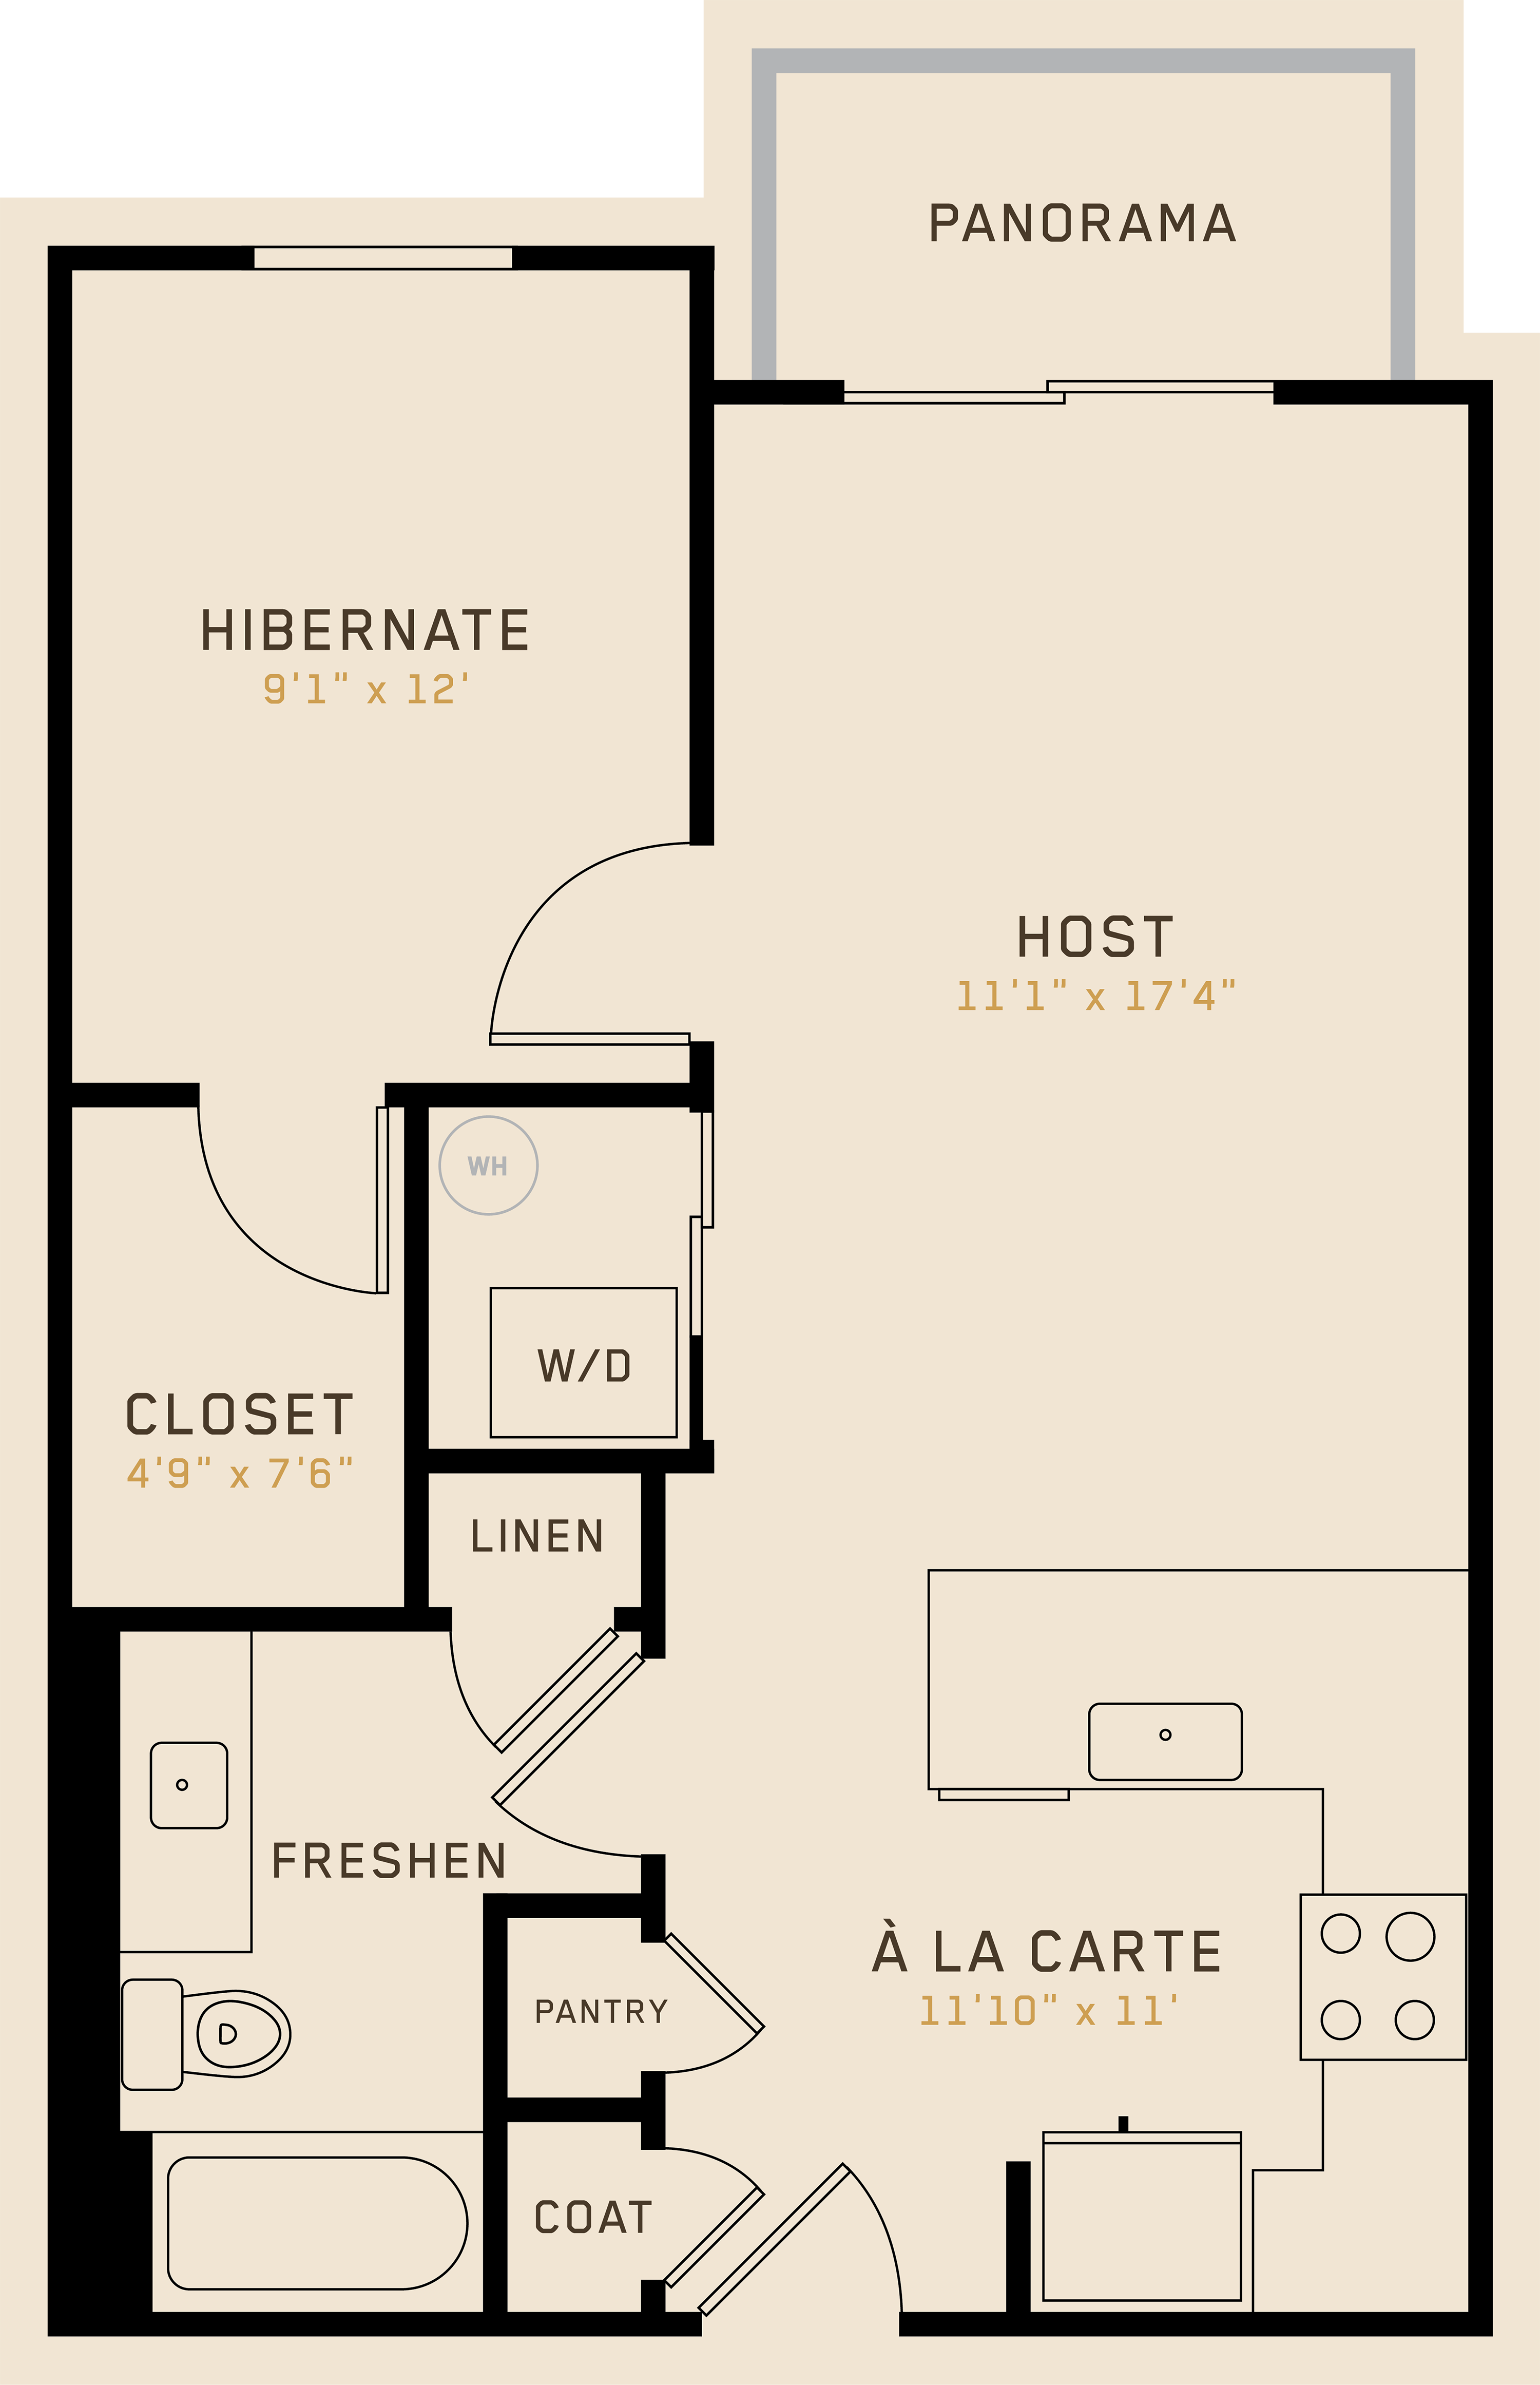 A1E floor plan featuring 1 bedroom, 1 bathroom, and is 652 square feet